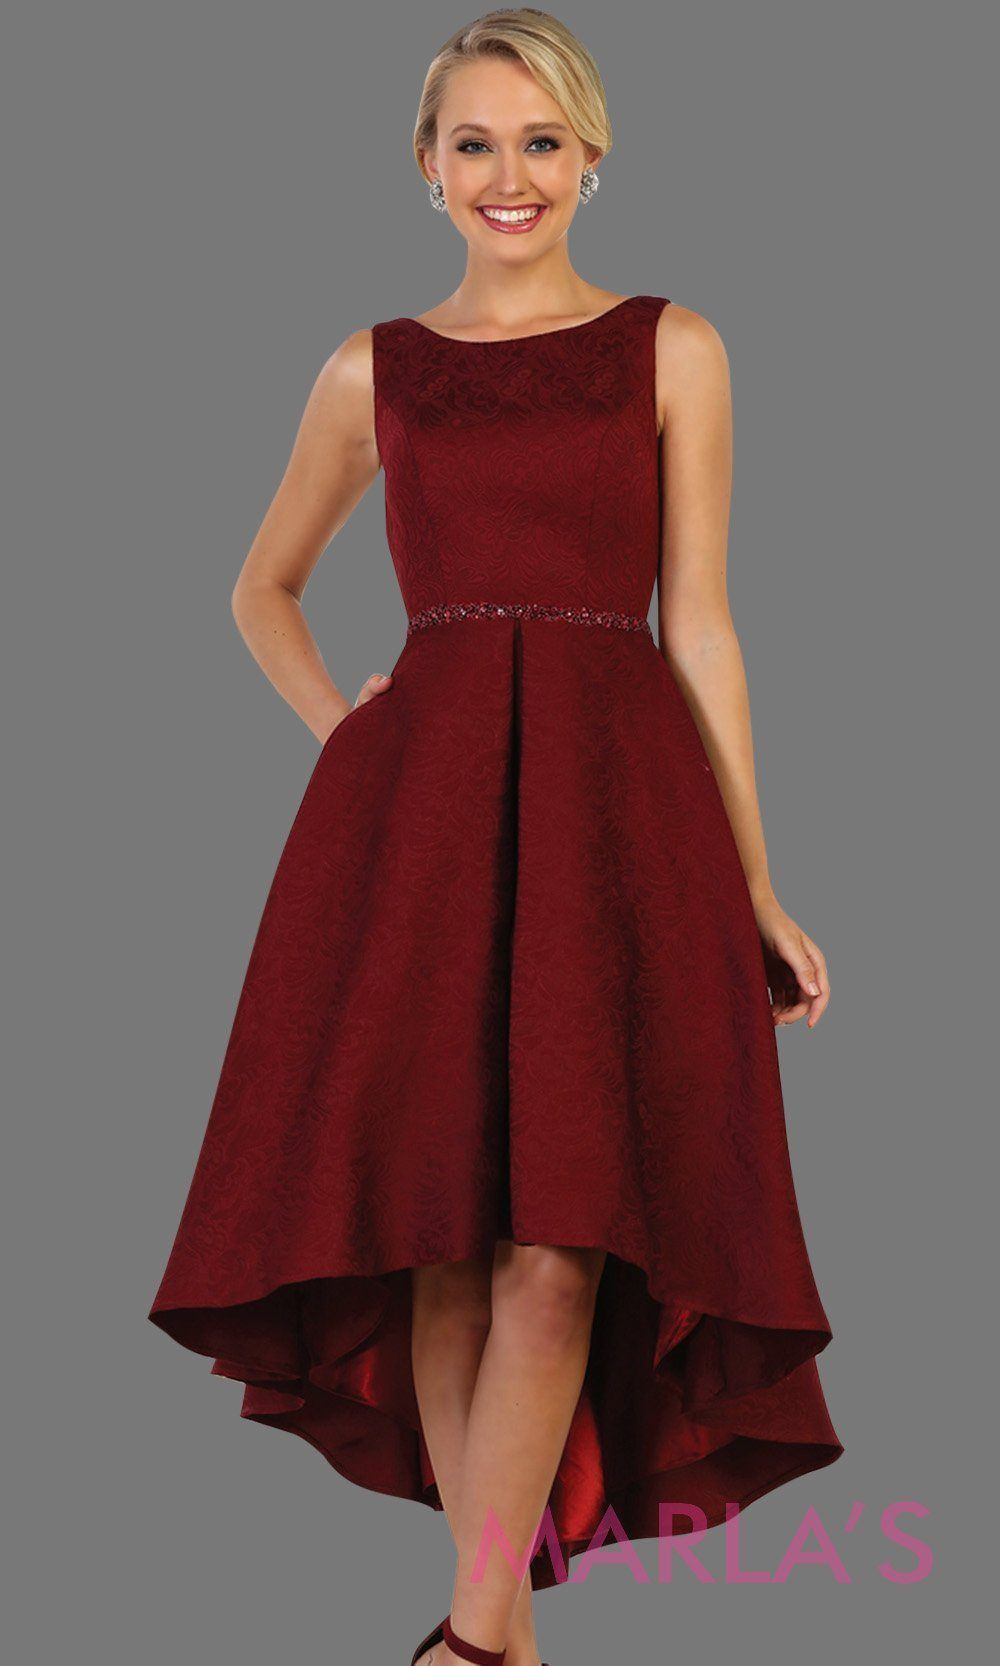 33691b748a0e 7474-High low burgundy dress with gold belt. This is a beautiful halter  grade 8 grad dress, high lo dark red prom dr… | HOTTEST INDEPENDANT WOMEN  STYLE in ...